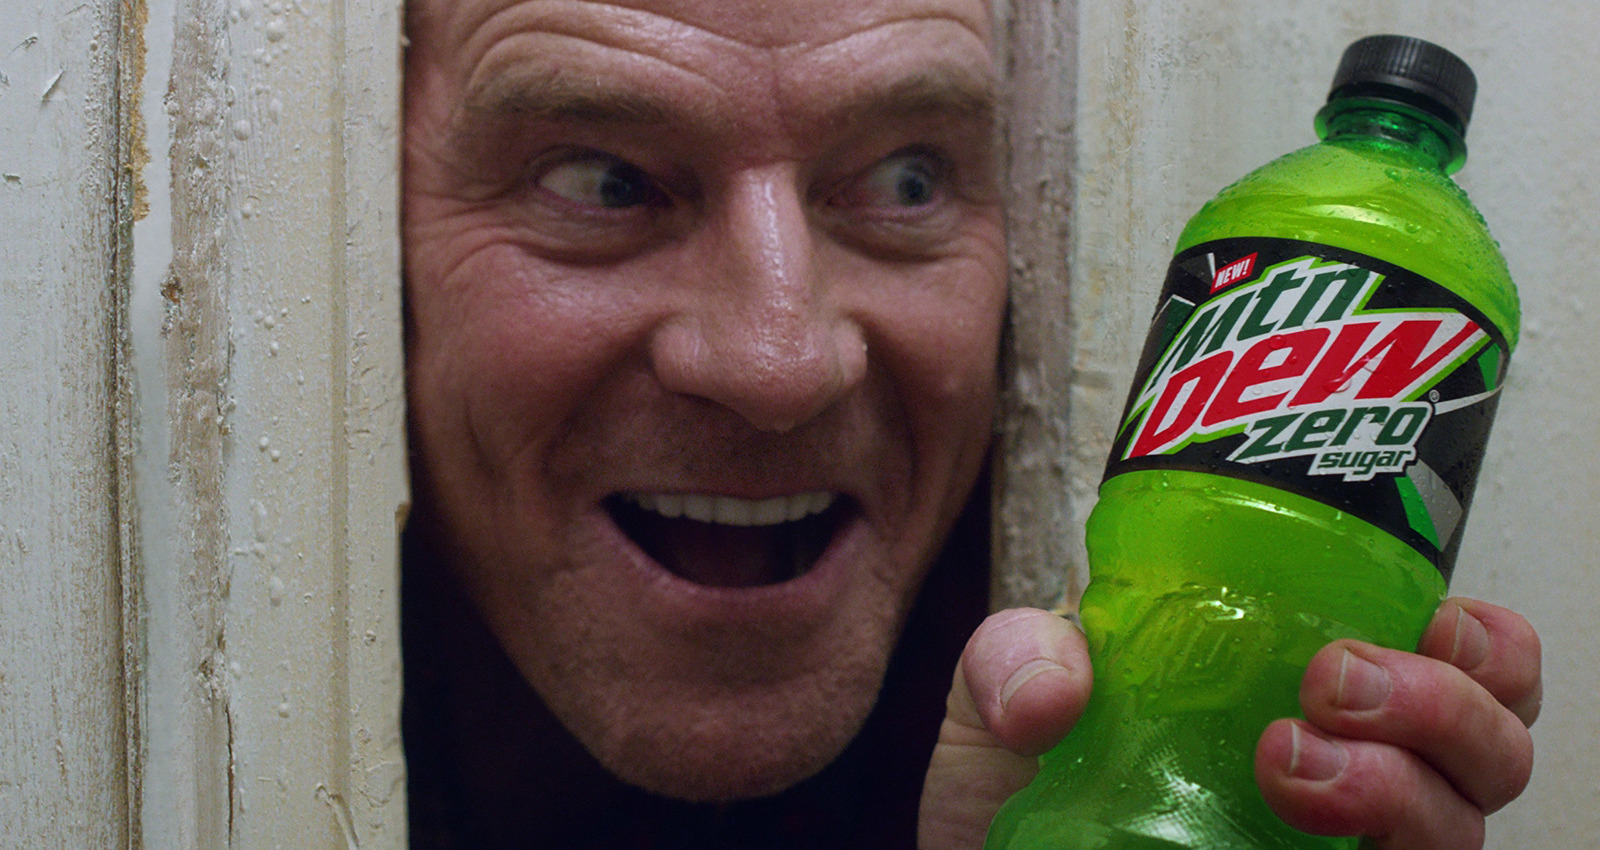 Here's Mountain Dew Zero